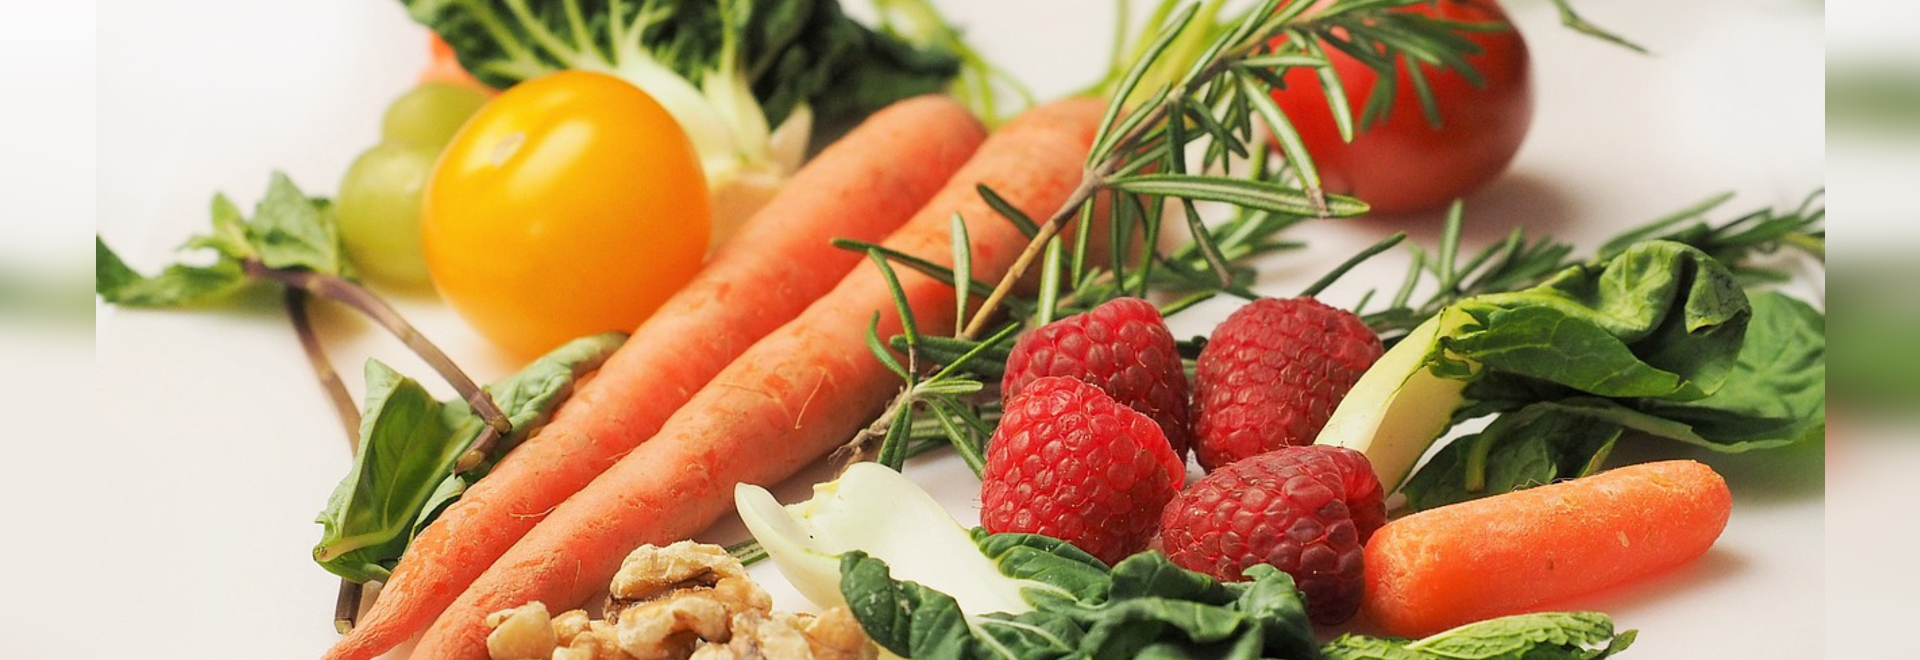 Choline: A Key Nutrient Lacking in Plant-Based Diets